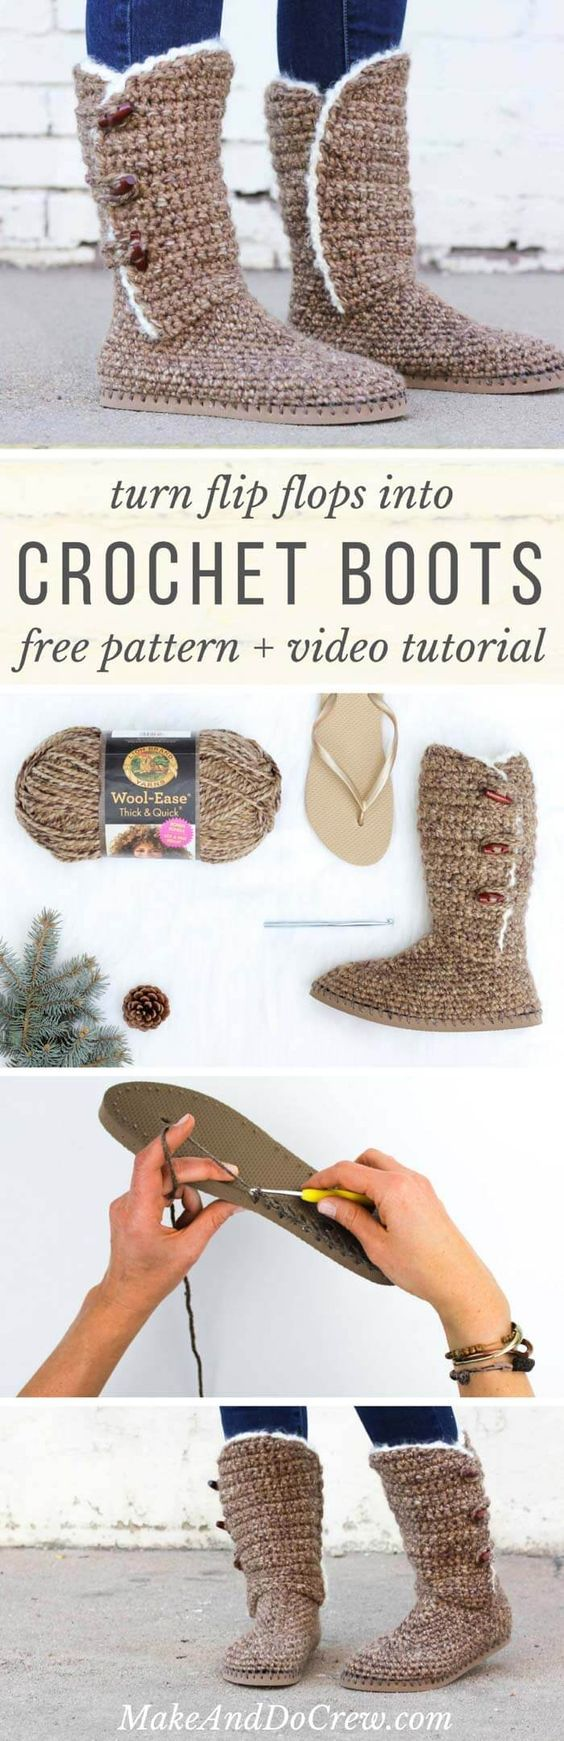 Flip Flop Crochet Slippers Free Pattern Video Tutorial: